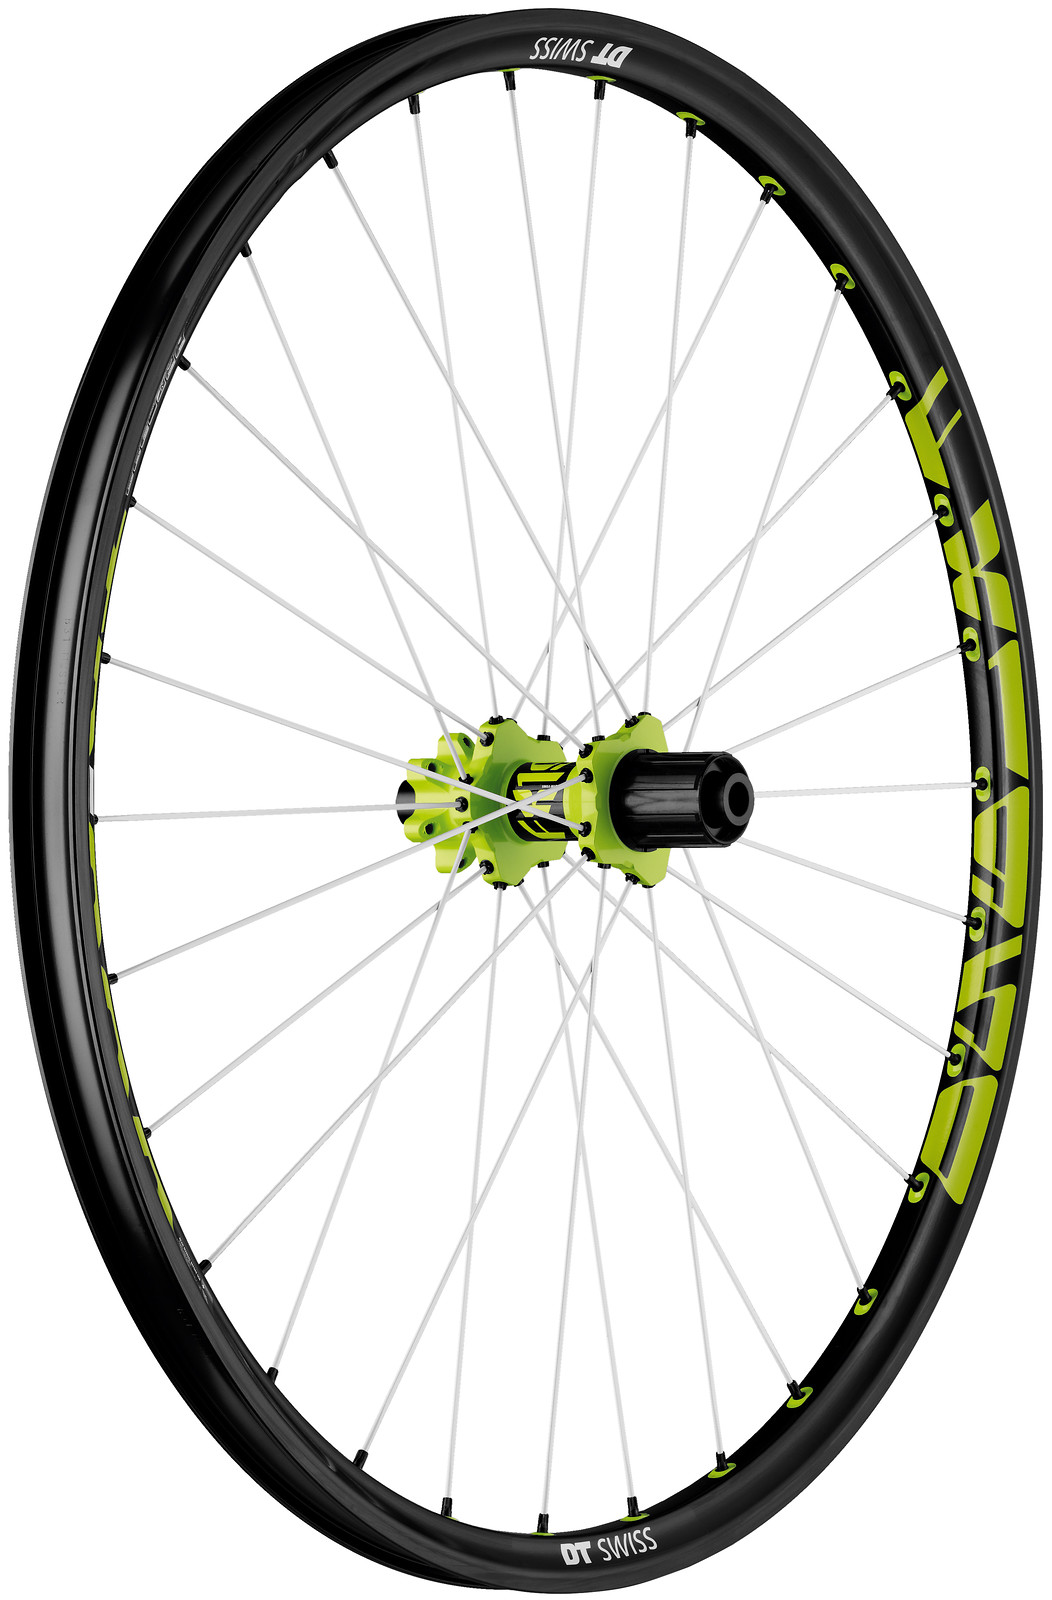 "DT Swiss FX 1950 Tricon 26"" Wheelset   DT Swiss FX 1950 Tricon Wheelset"